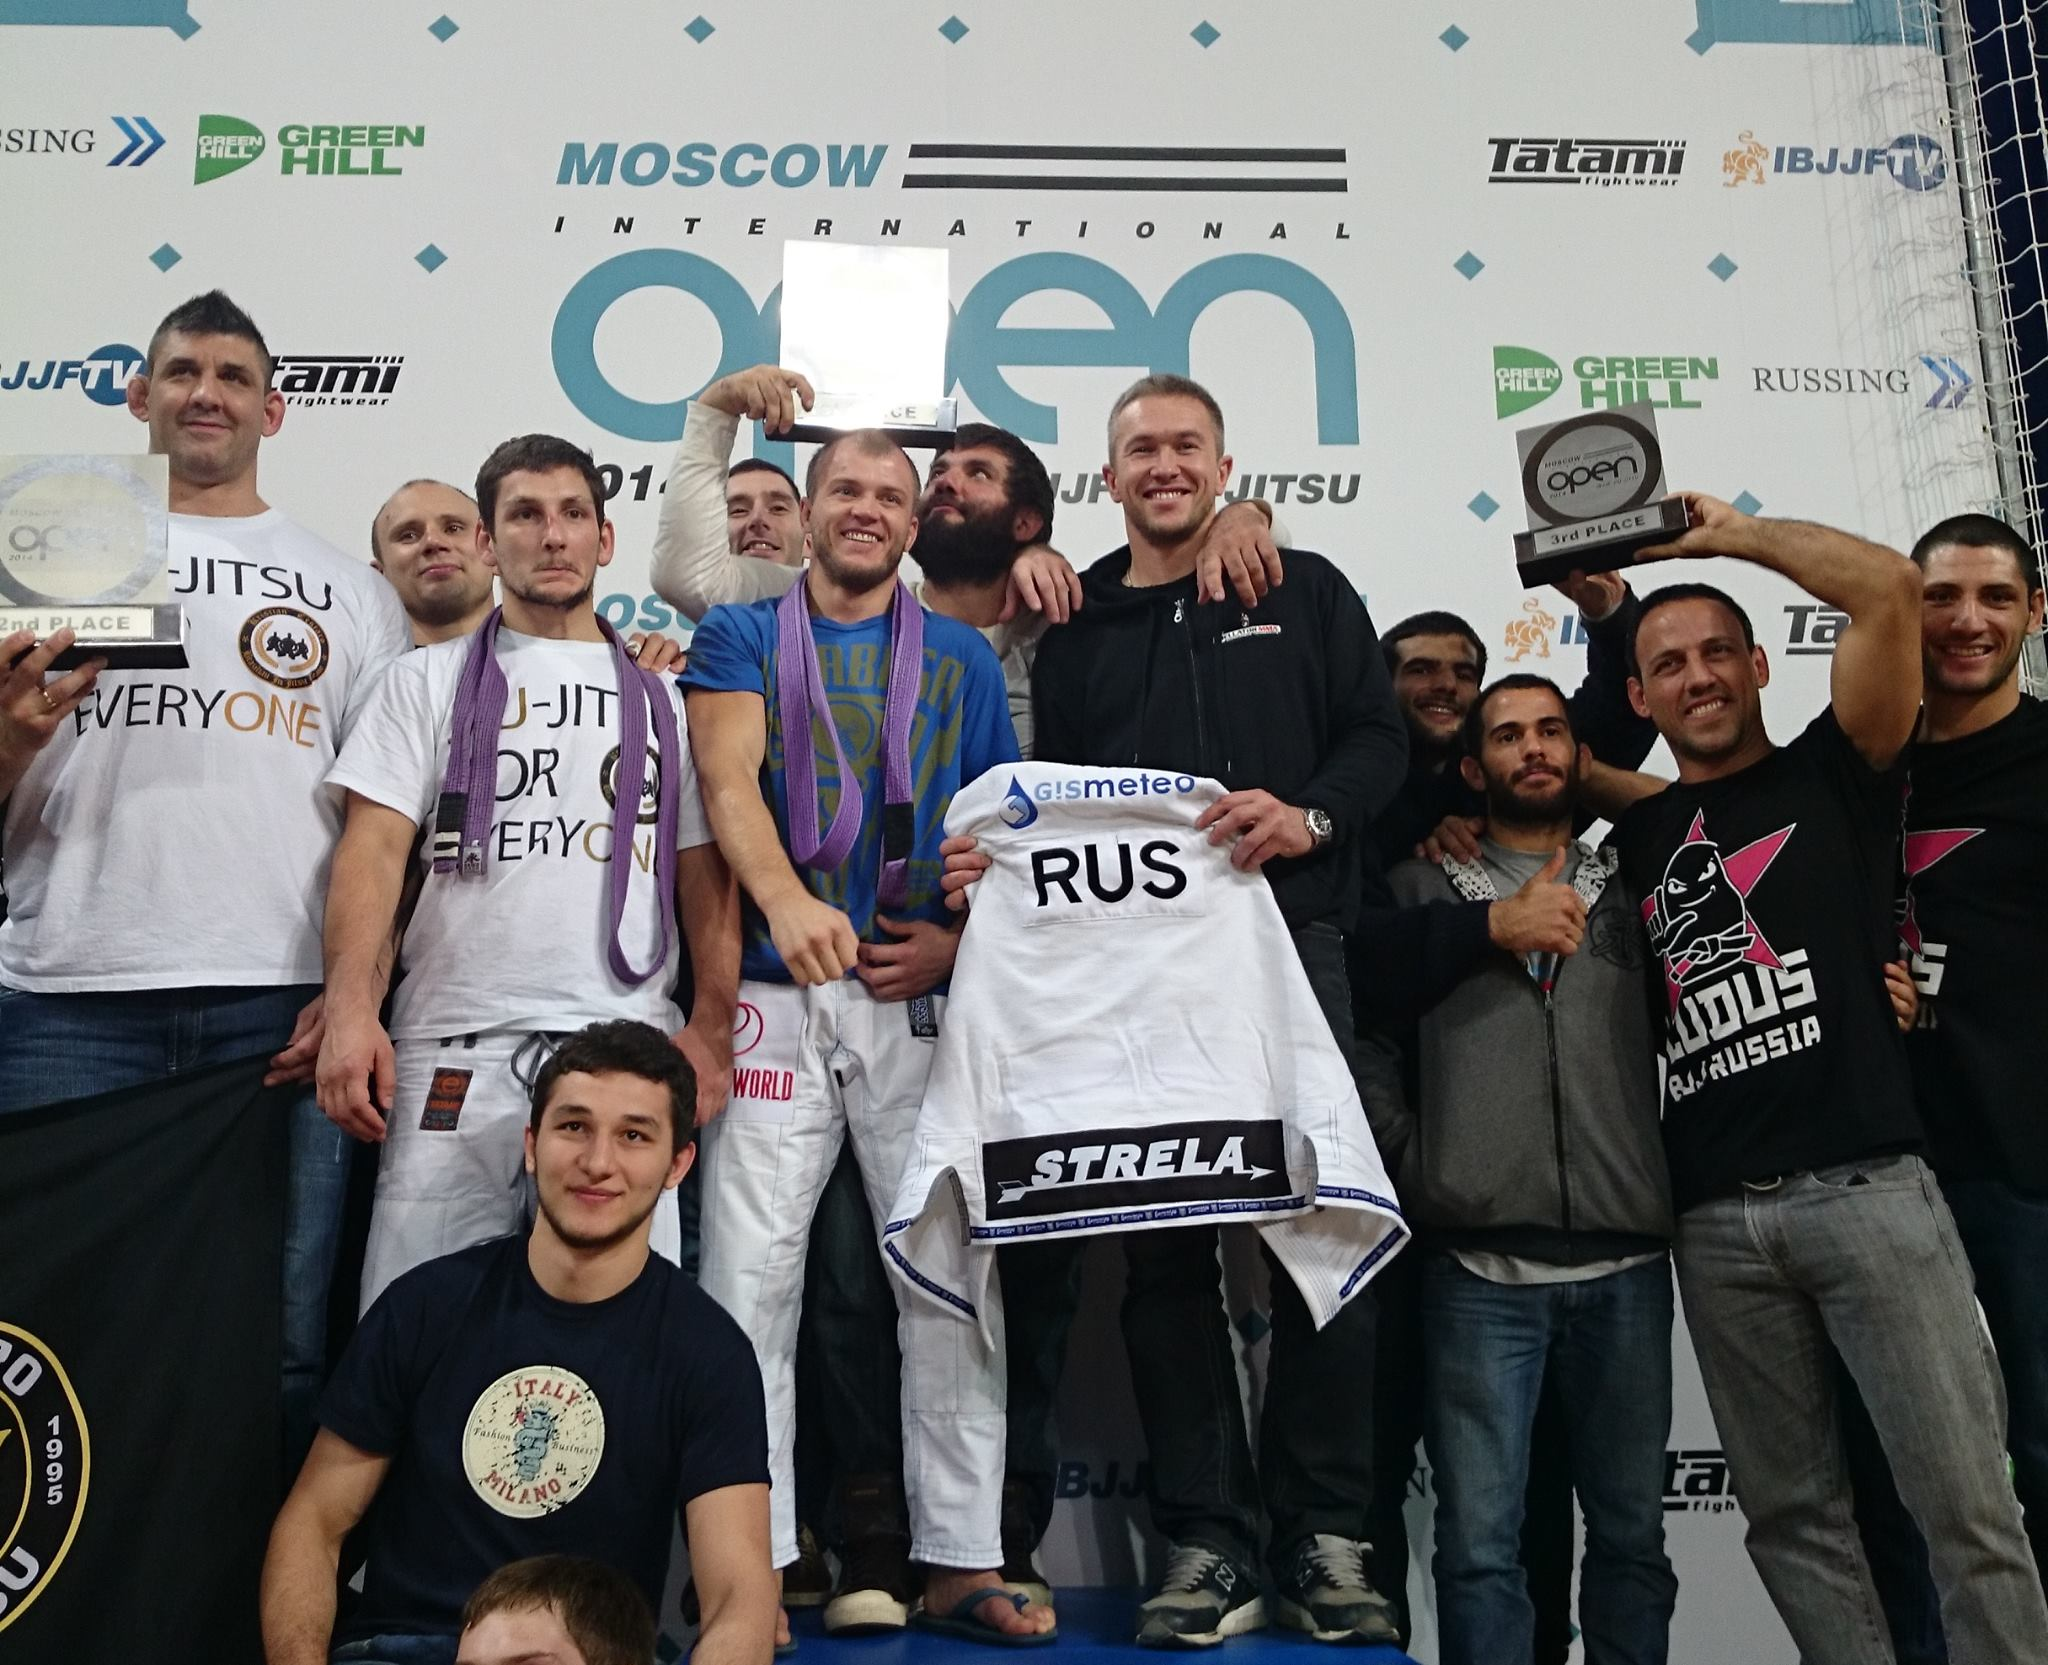 The teams after day two of the Moscow Open